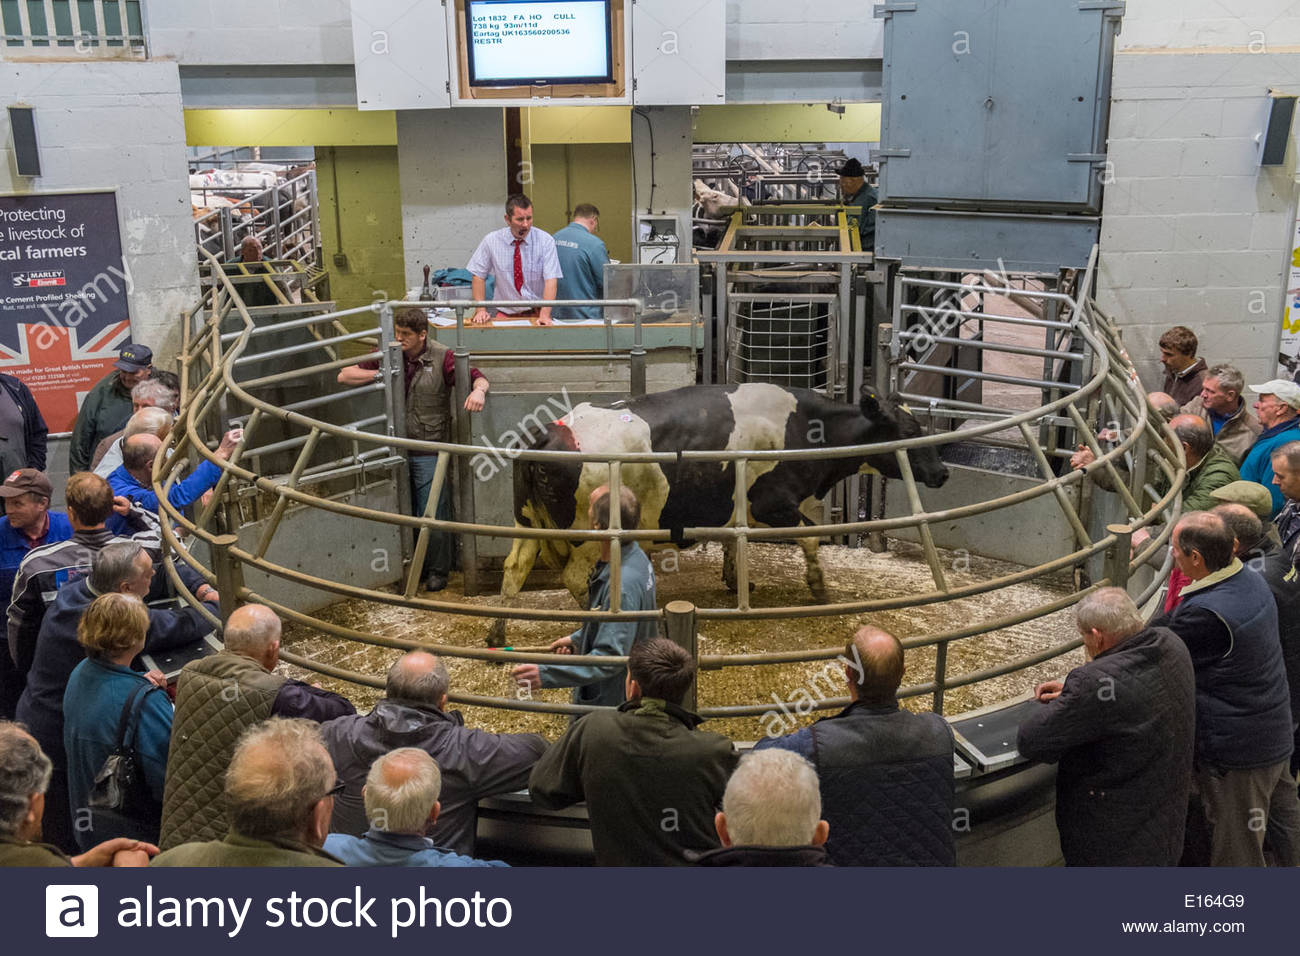 How to Buy Cattle at an Auction